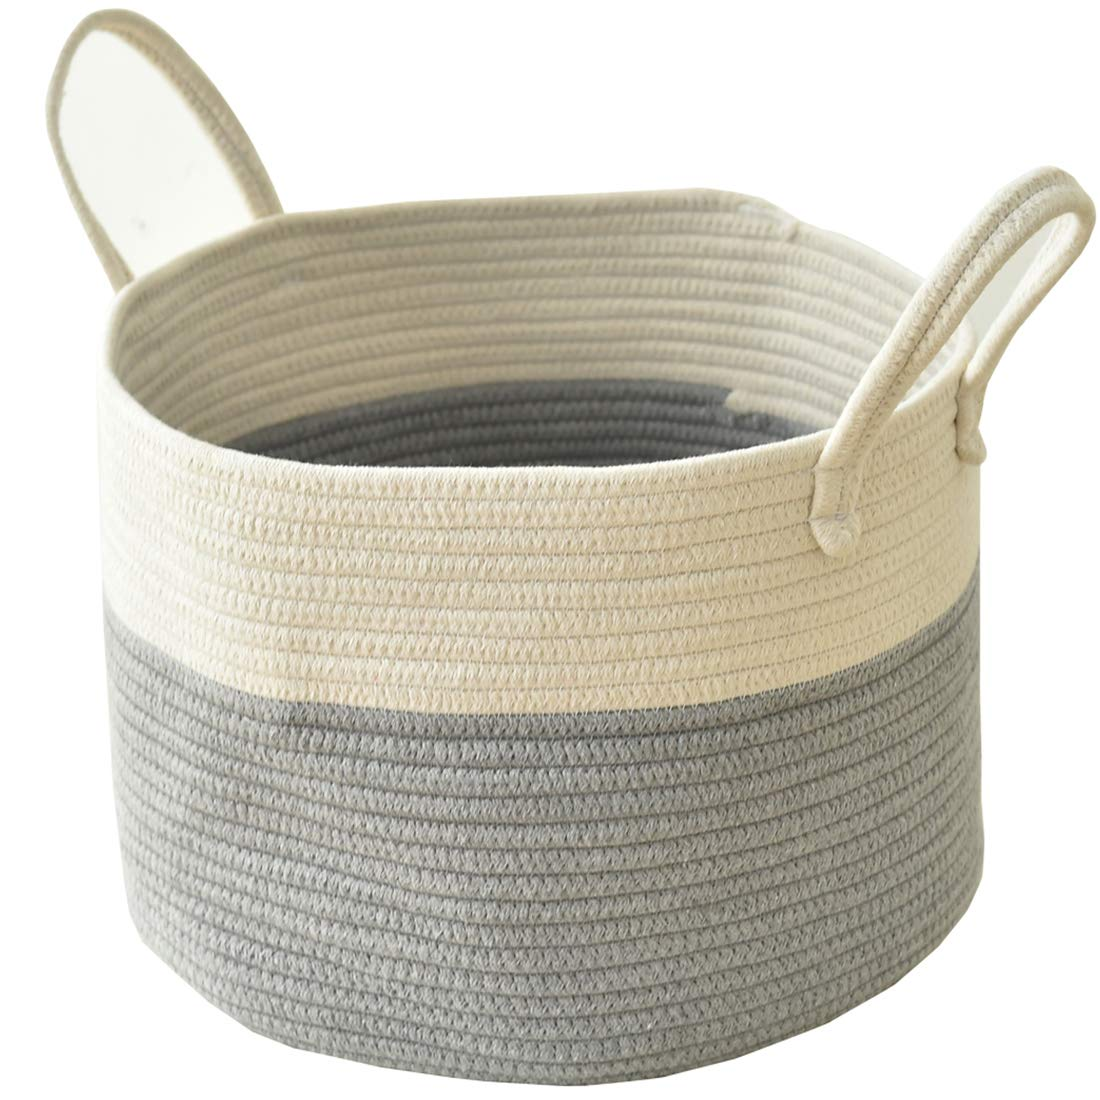 """Inough Cotton Rope Storage Baskets with Handles Durable Large Storage Bins Home Organizer Solution for Office, Bedroom, Closet, Toys & Laundry 15"""" x 9.8"""" (Cylinder)"""